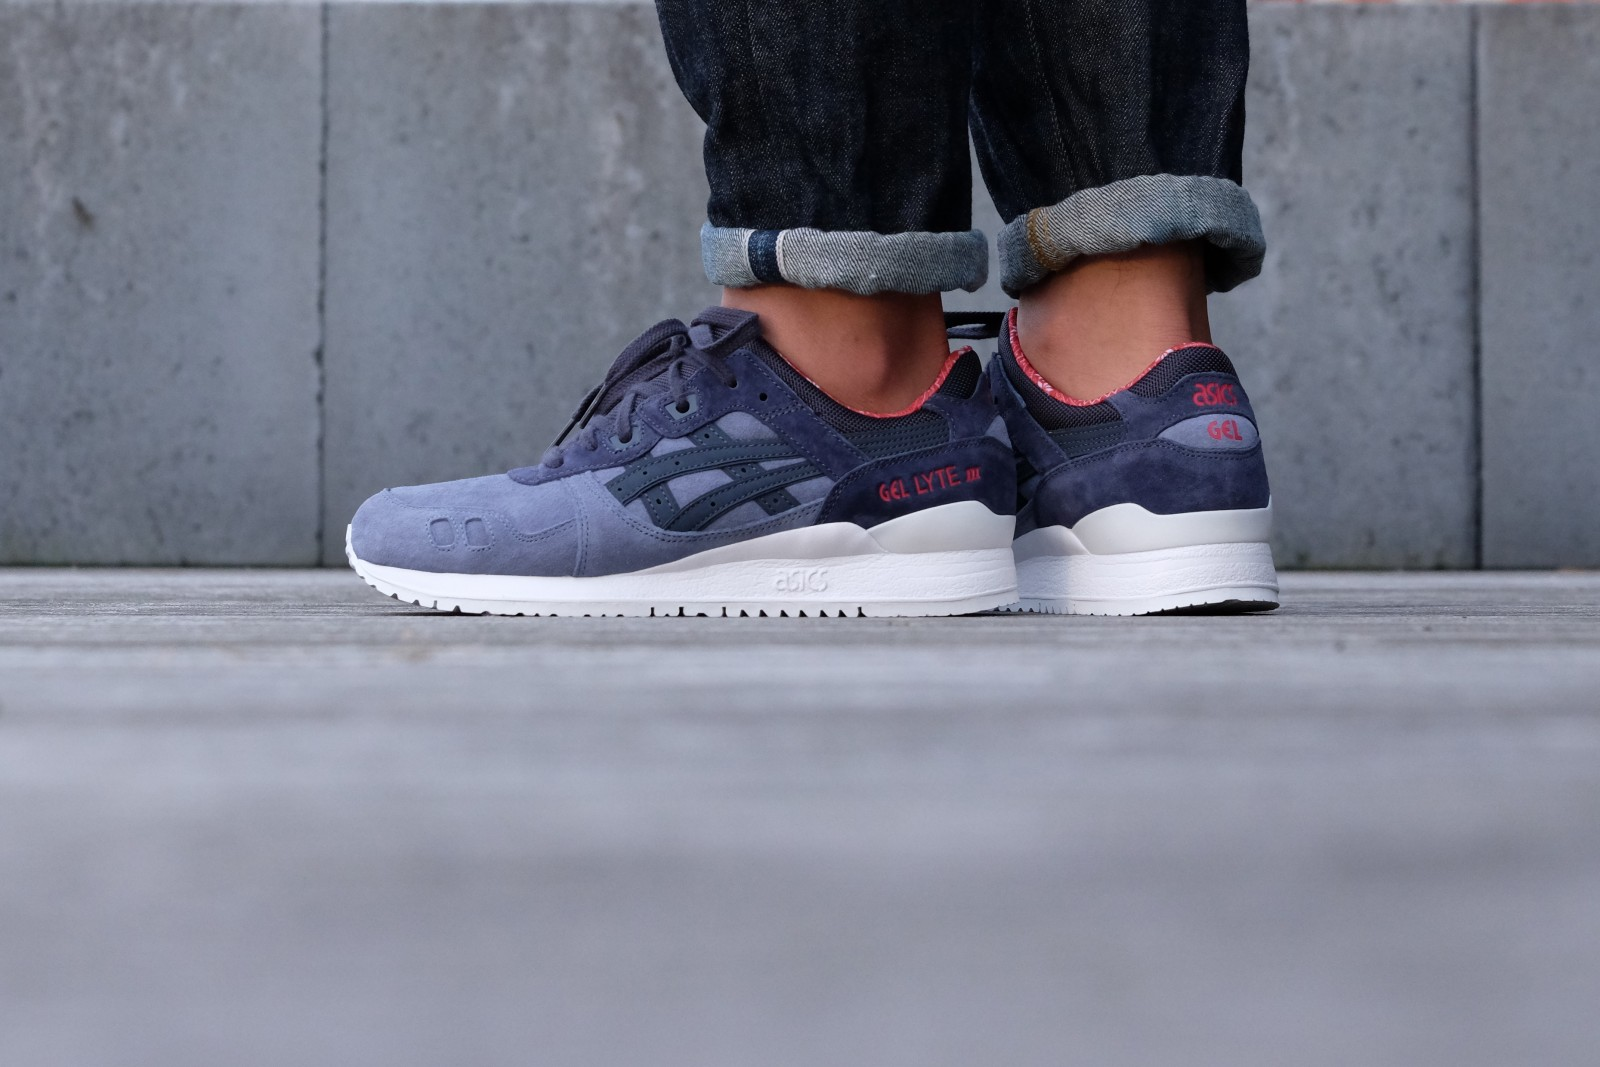 Asics Gel Lyte III | Blue | Sneakers | H6X4L 4650 | Caliroots